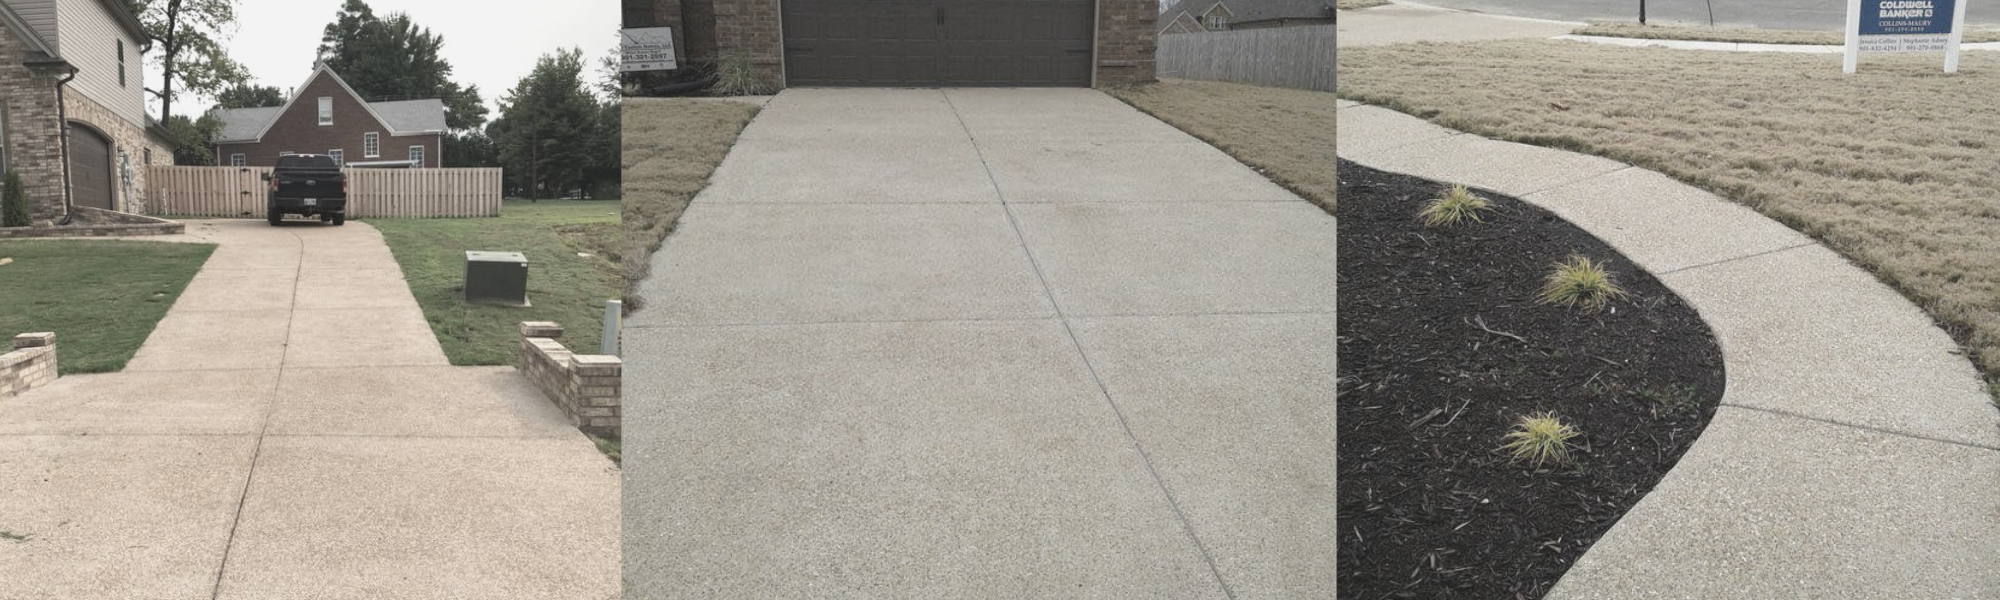 concrete driveways and sidewalks